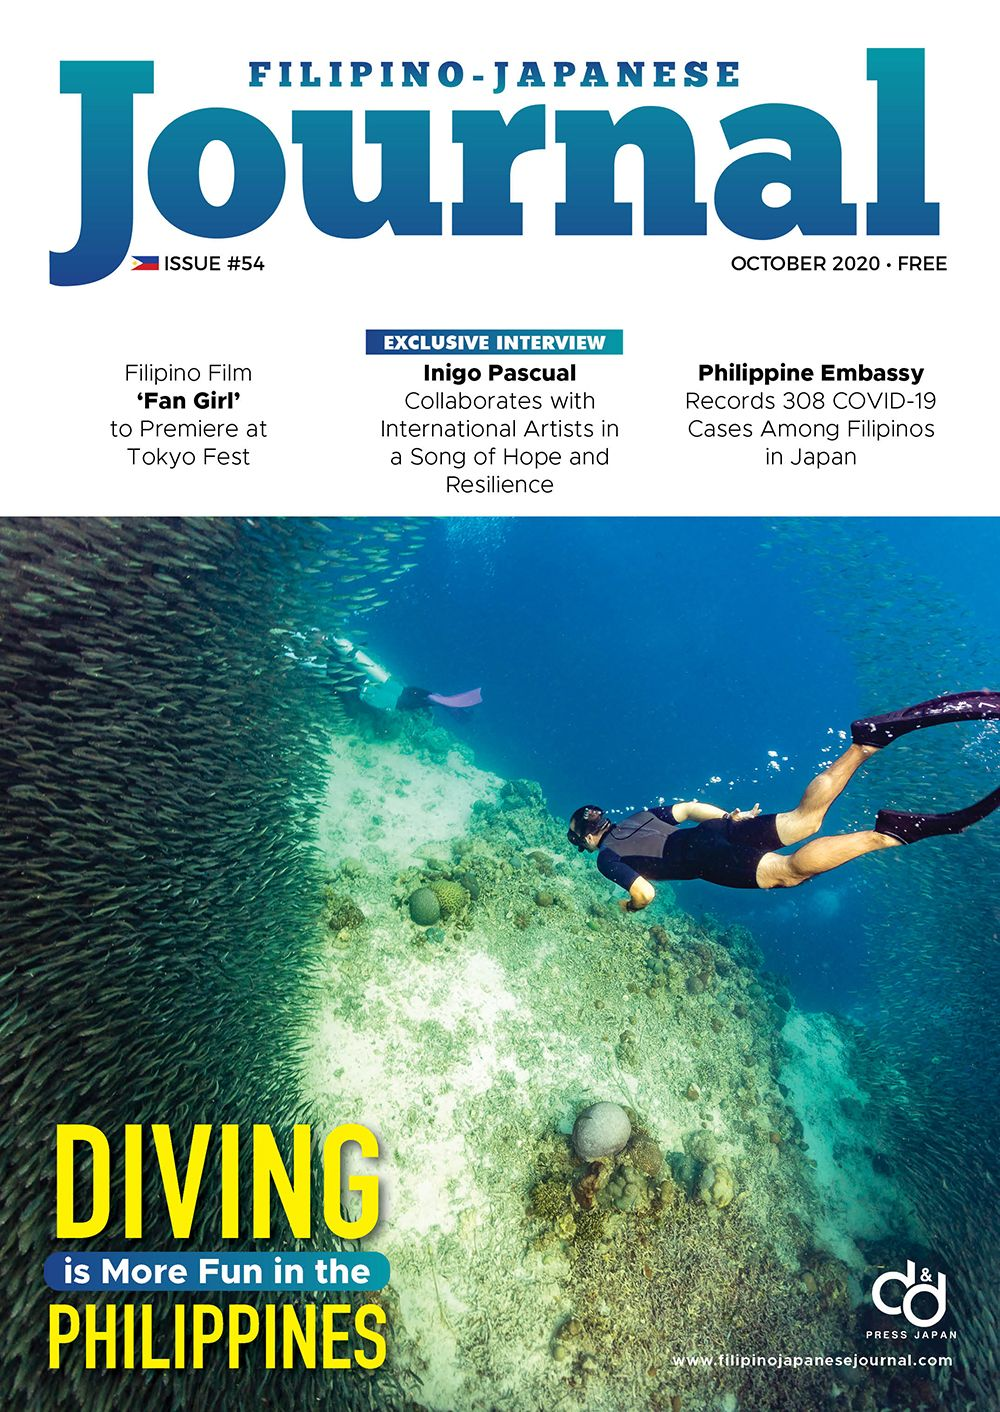 Diving is More Fun in the Philippines